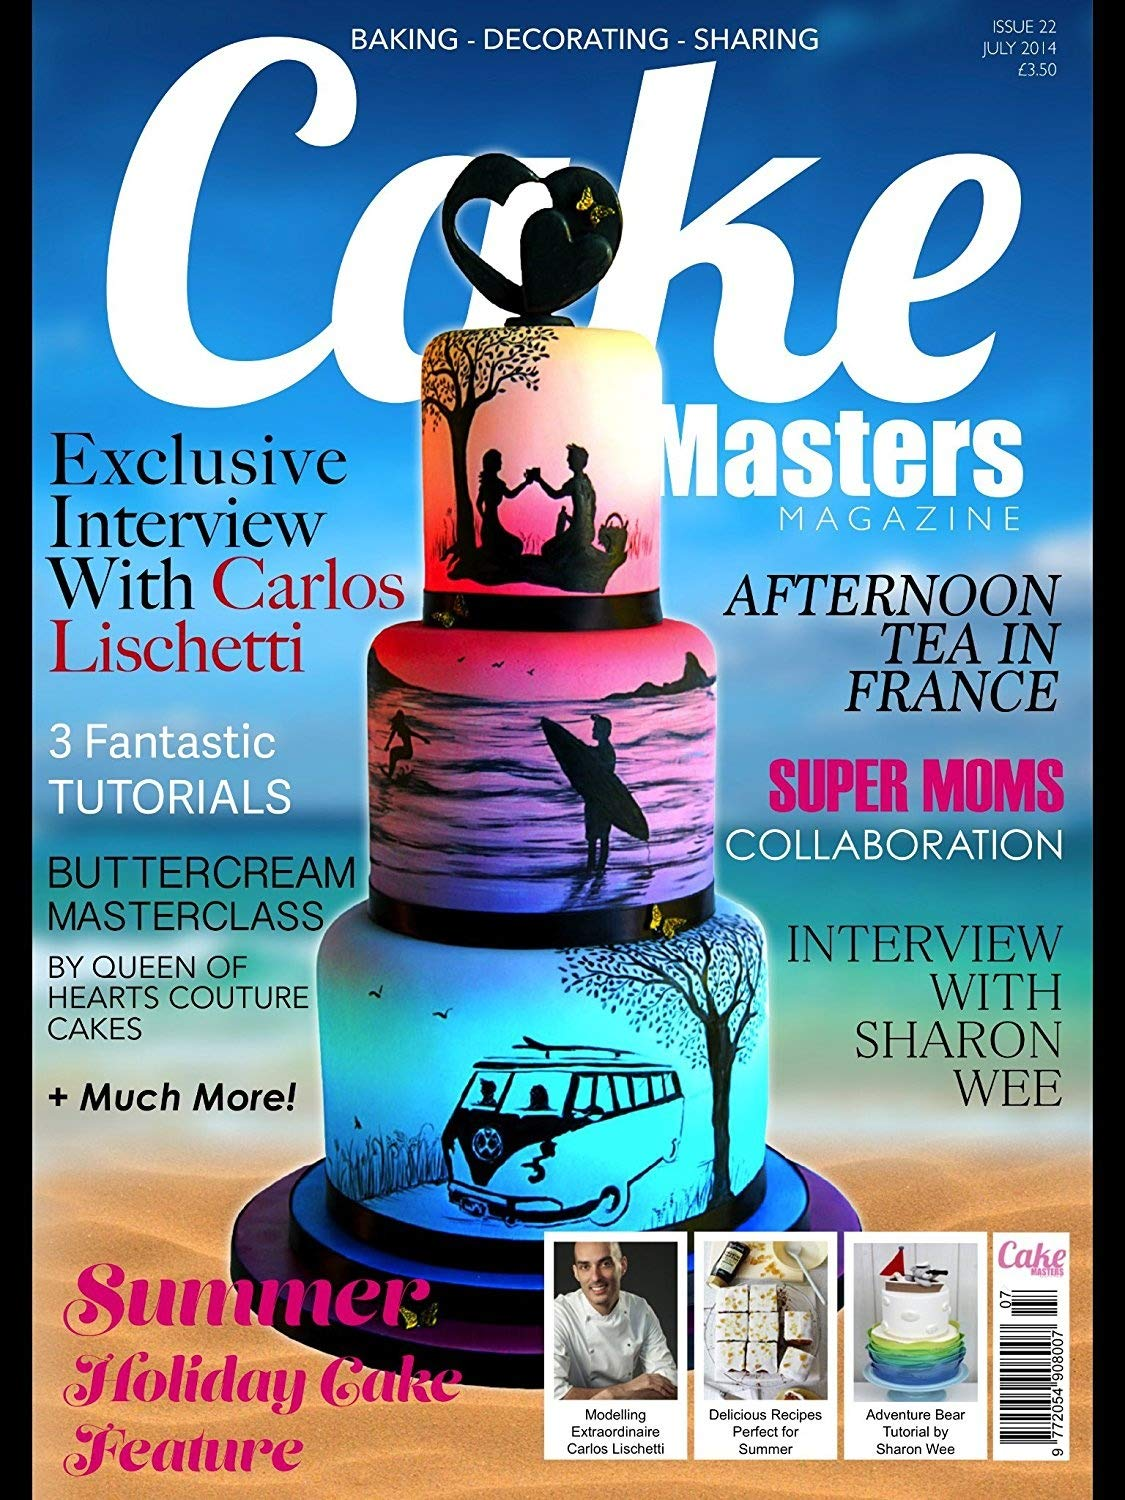 Award Winning Clairella Cakes Airbrush and Compressor Ideal for Cake Decoration with 5 Speed Settings